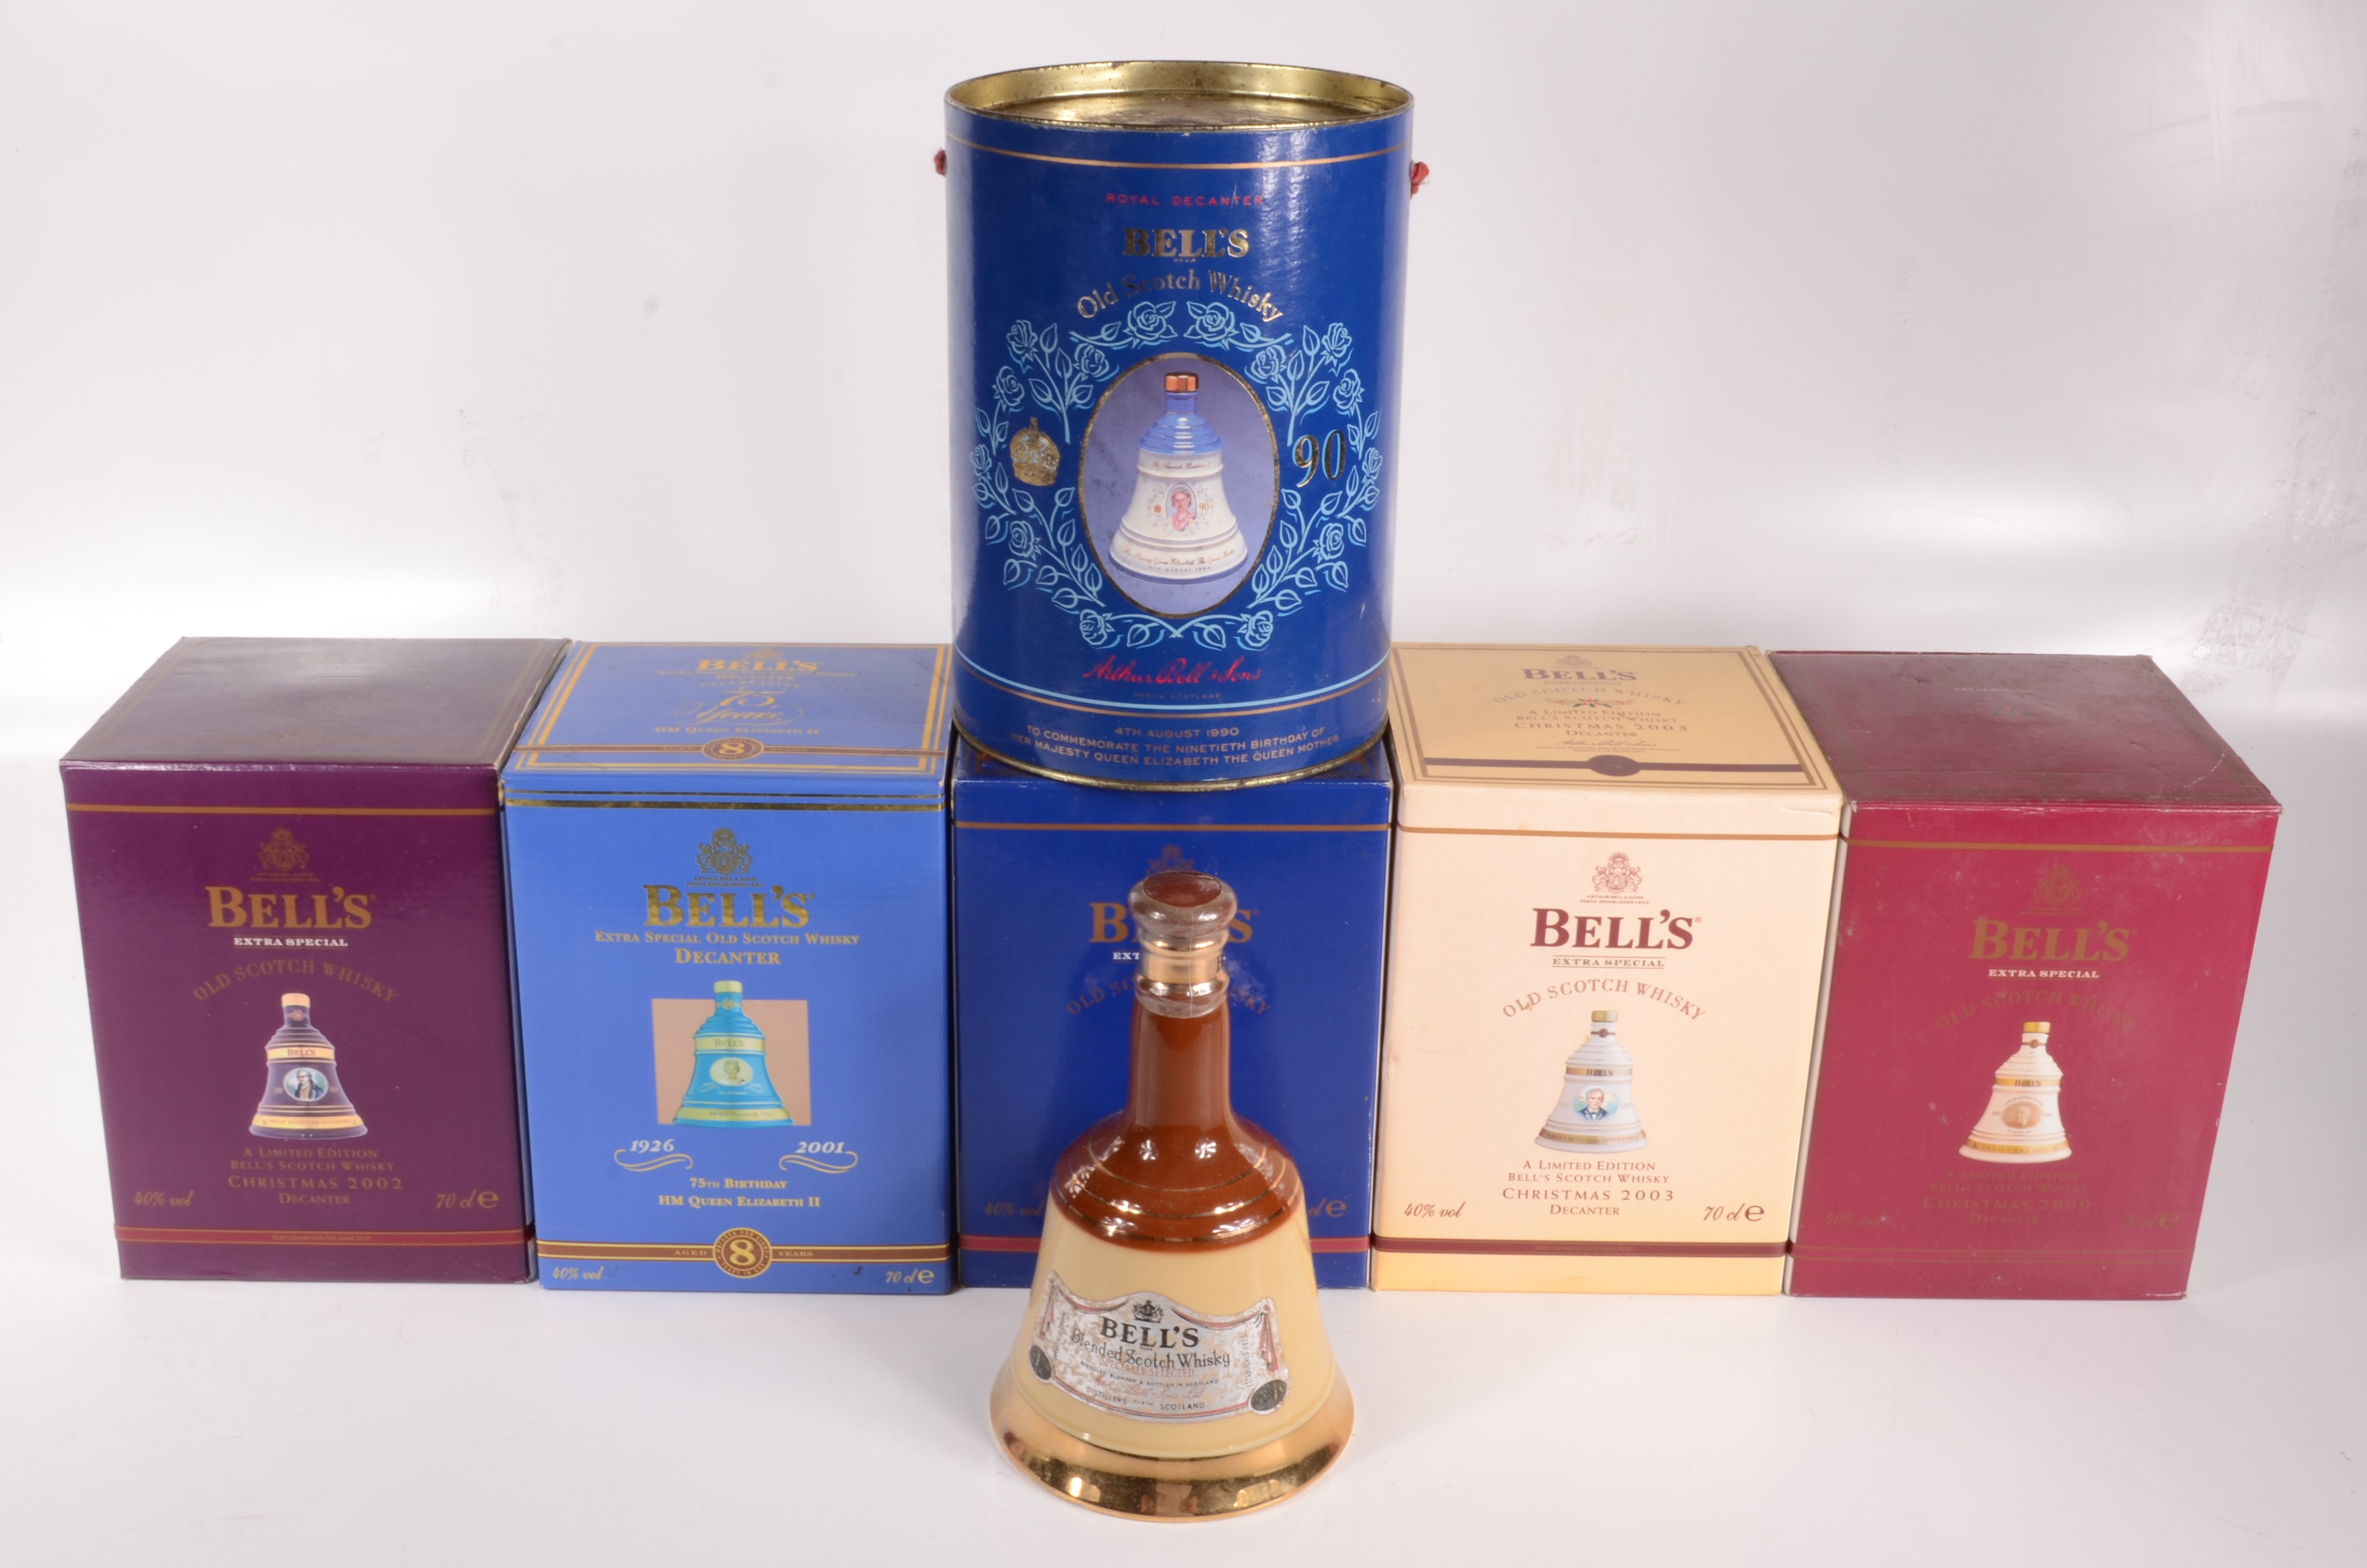 Lot 27 - Four boxed Bell's limited edition Scotch whisky decanters, aged 8 years, Christmas 2000, 2001,